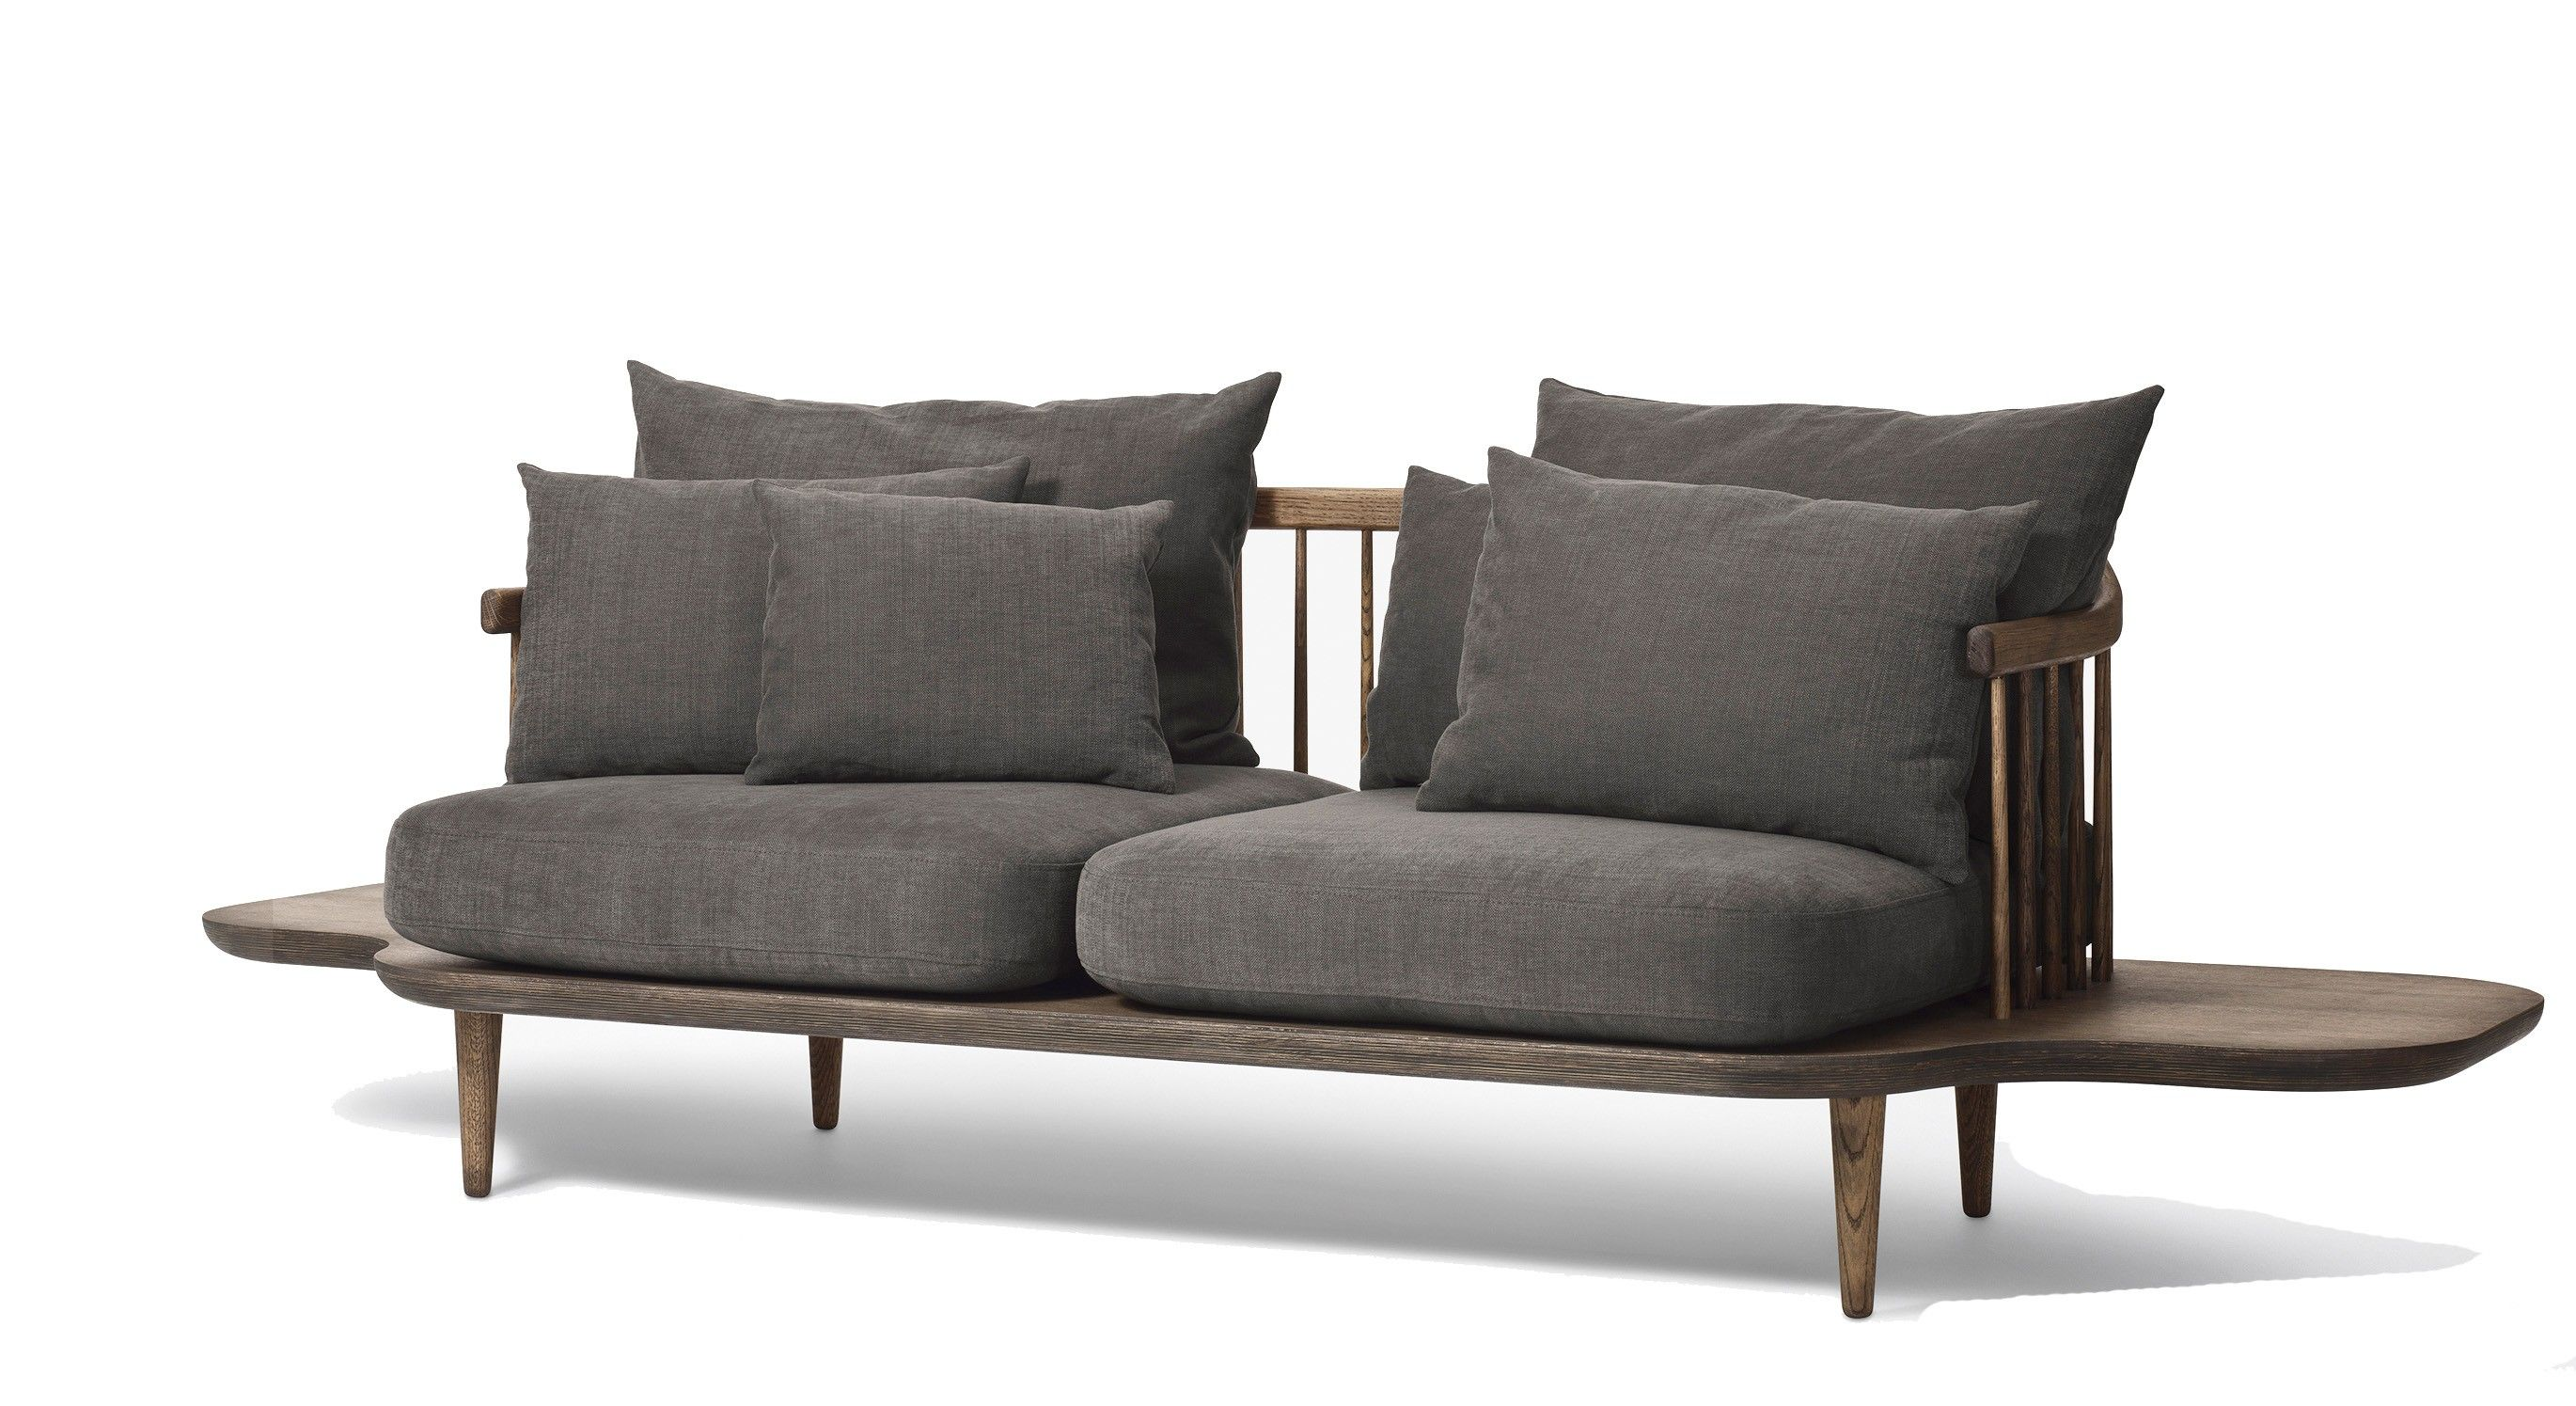 Eitelkeit Couch Sessel Beste Wahl &tradition Fly Sofa With Sidetables, Hot Madison